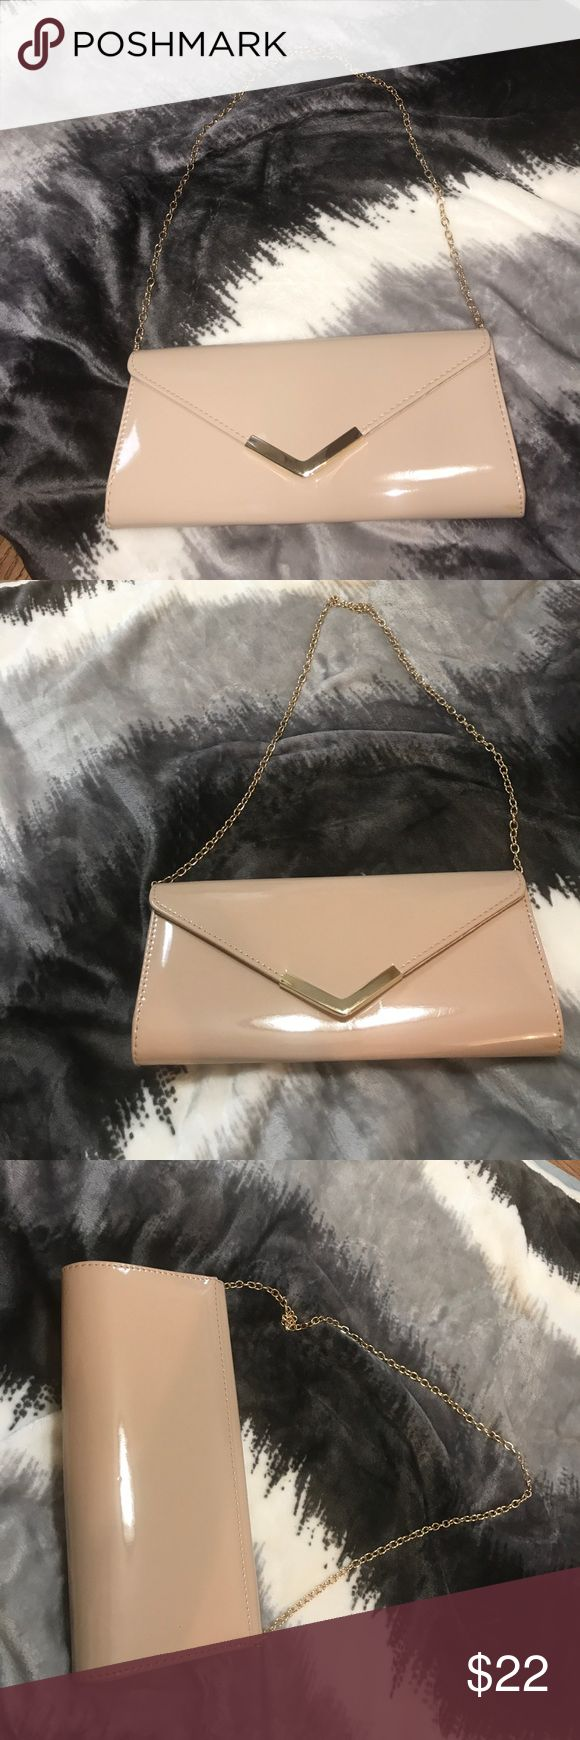 Aldo nude clutch Genlty used this once.Great condition. Minor exterior scratches on the gold part. Few stains on the interior. Perfect for an evening outfit, you can remove the strap if you want to use it as a clutch✨ Aldo Bags Clutches & Wristlets